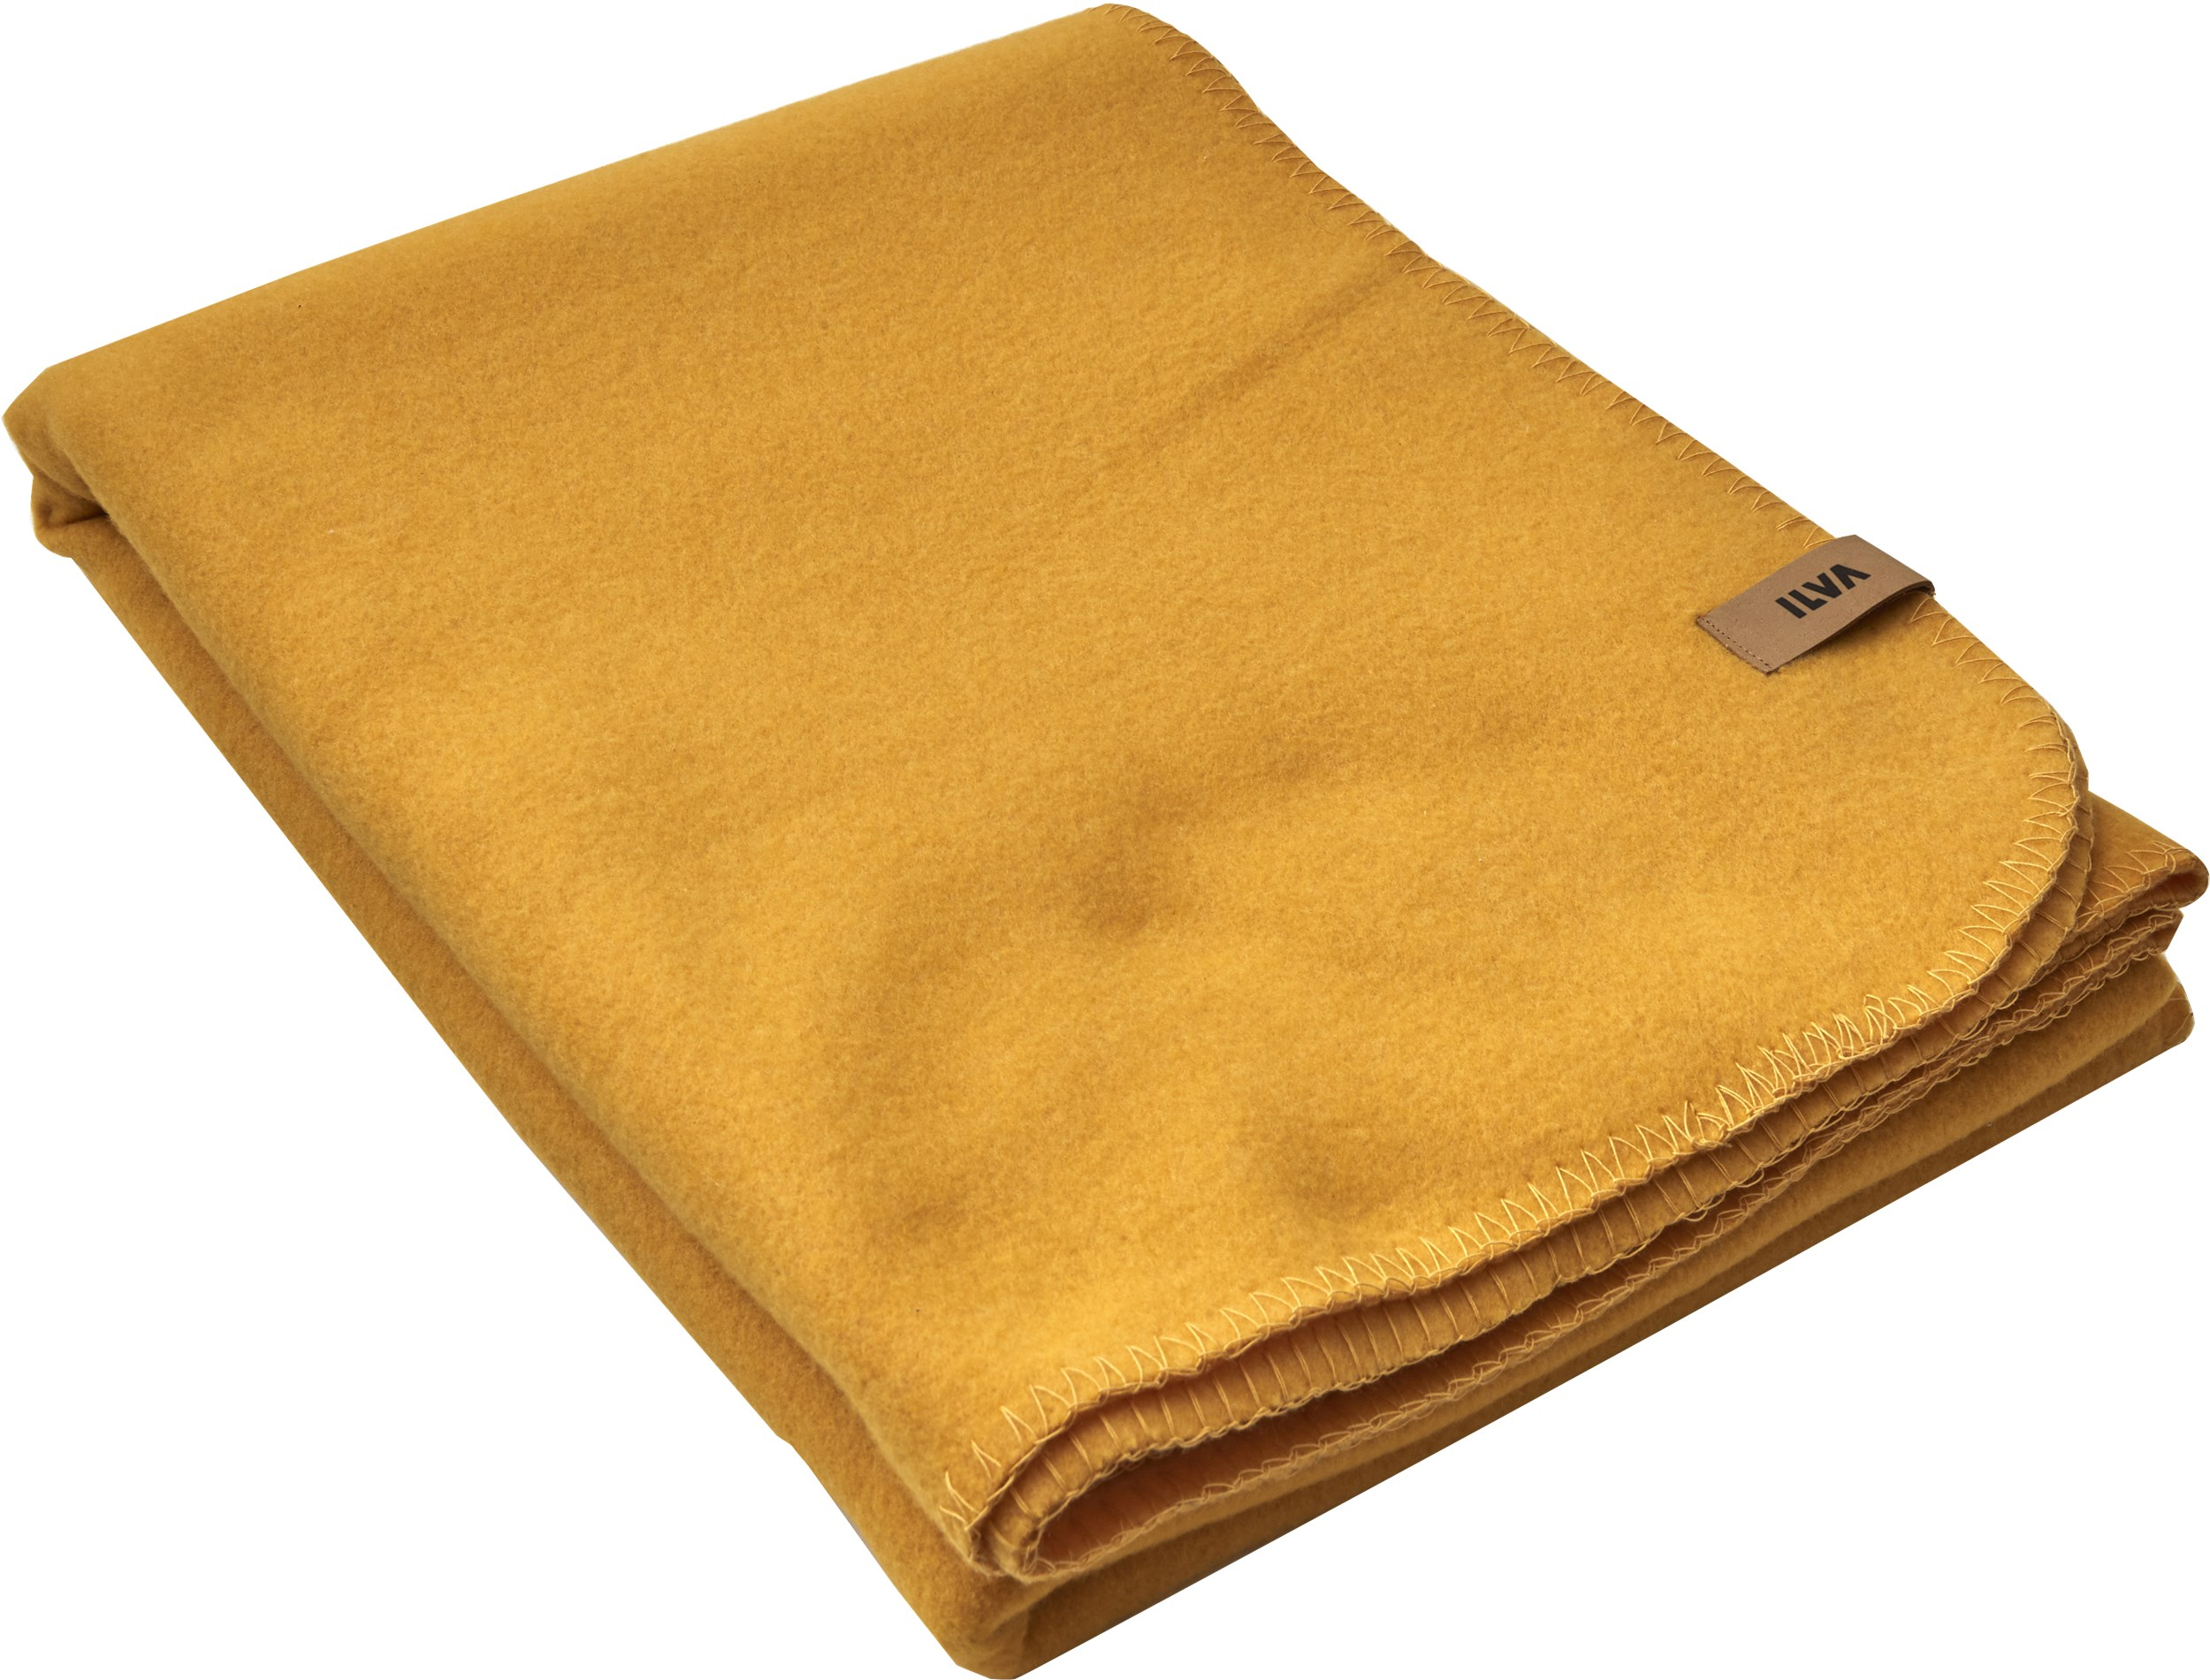 Fleece Plaid 140 x 200 cm - Mustard Yellow polyester